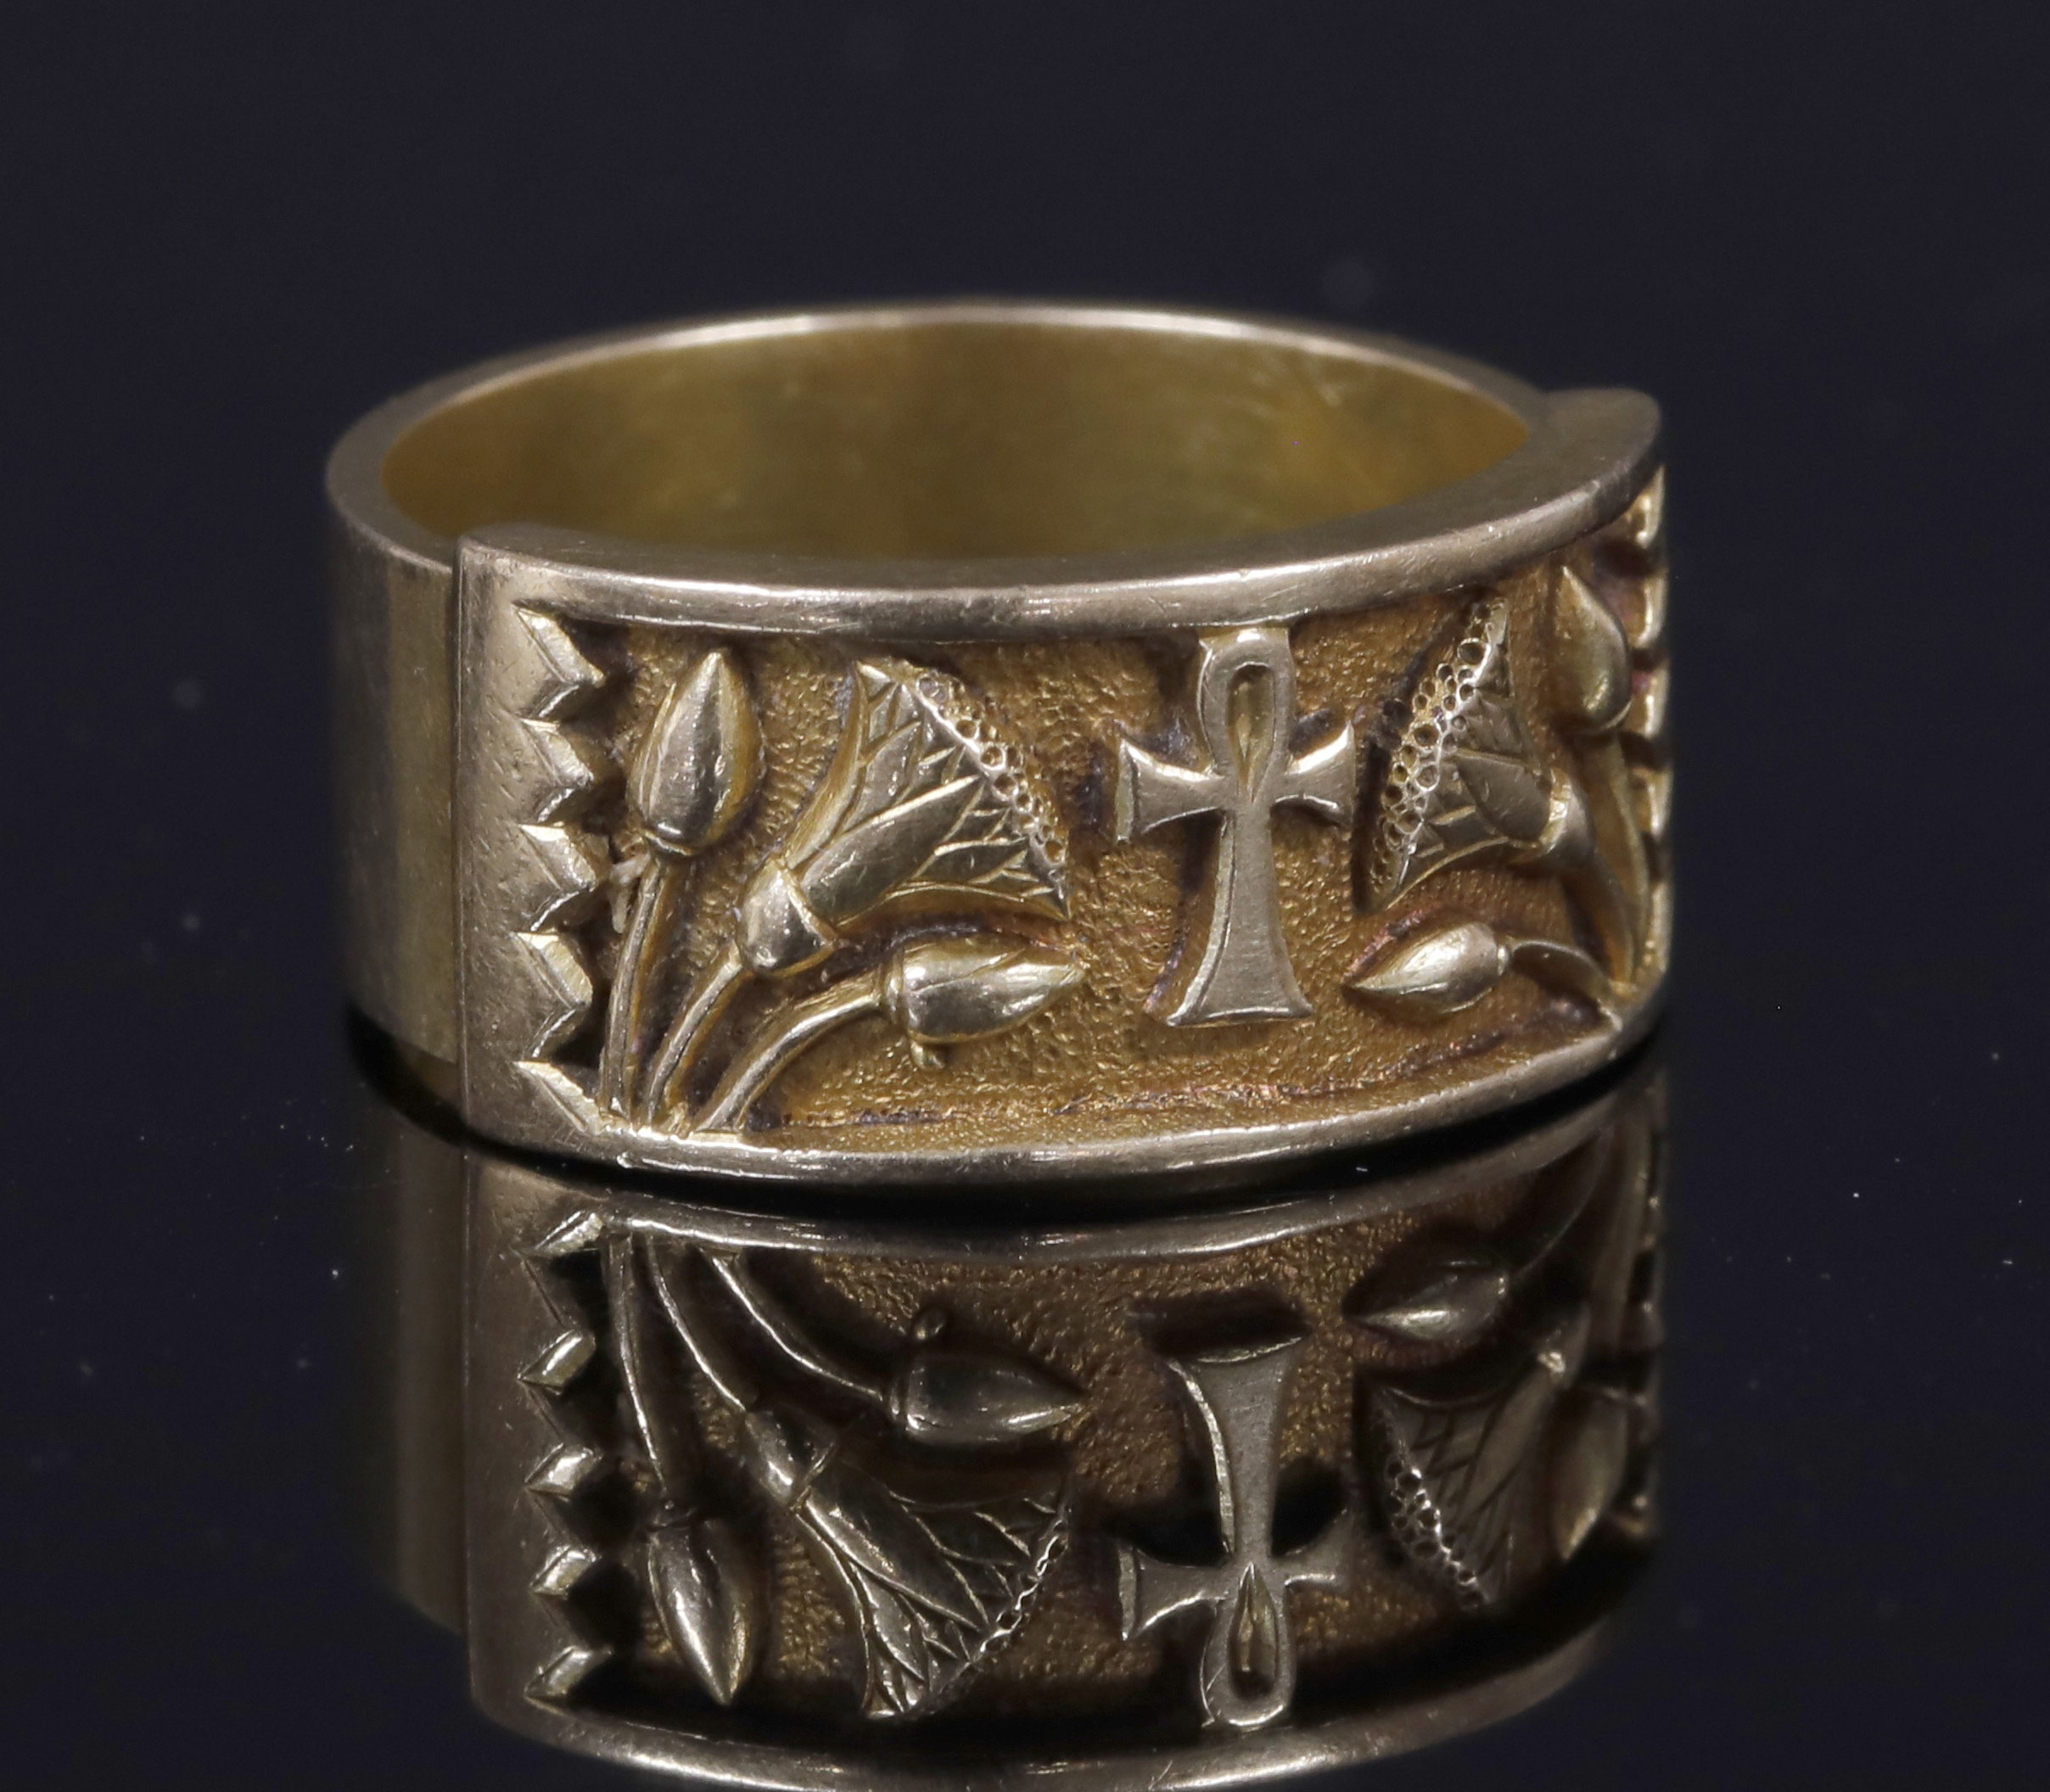 An Egyptian Revival ring, c.1900, with ankh and lotus motifs. The ankh hieroglyph represents the word for life, whilst the lotus flower was associated with Sun god Atum-Ra and symbolised creation and rebirth.  Lot 145, Fine Jewellery Sale, 19th November 2019 Hammer £380